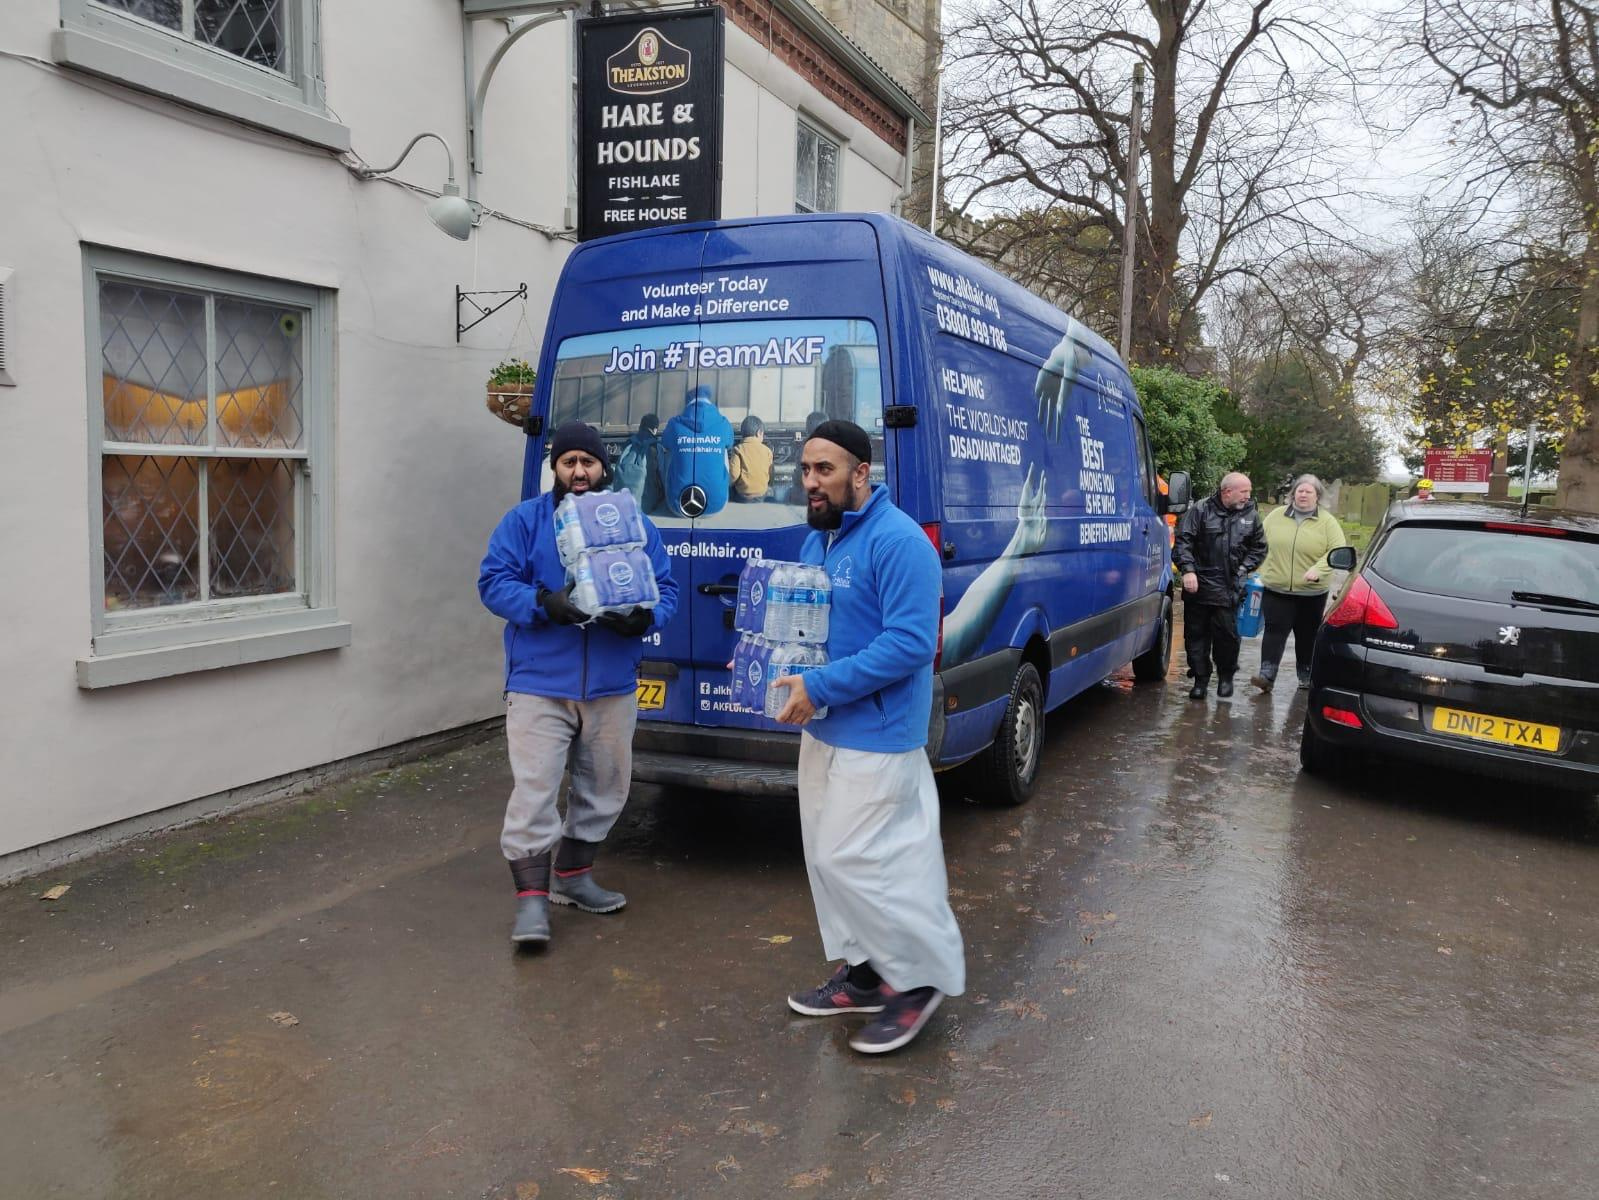 Muslim charity comes to aid of flood victims in deluged Doncaster village - Doncaster Free Press